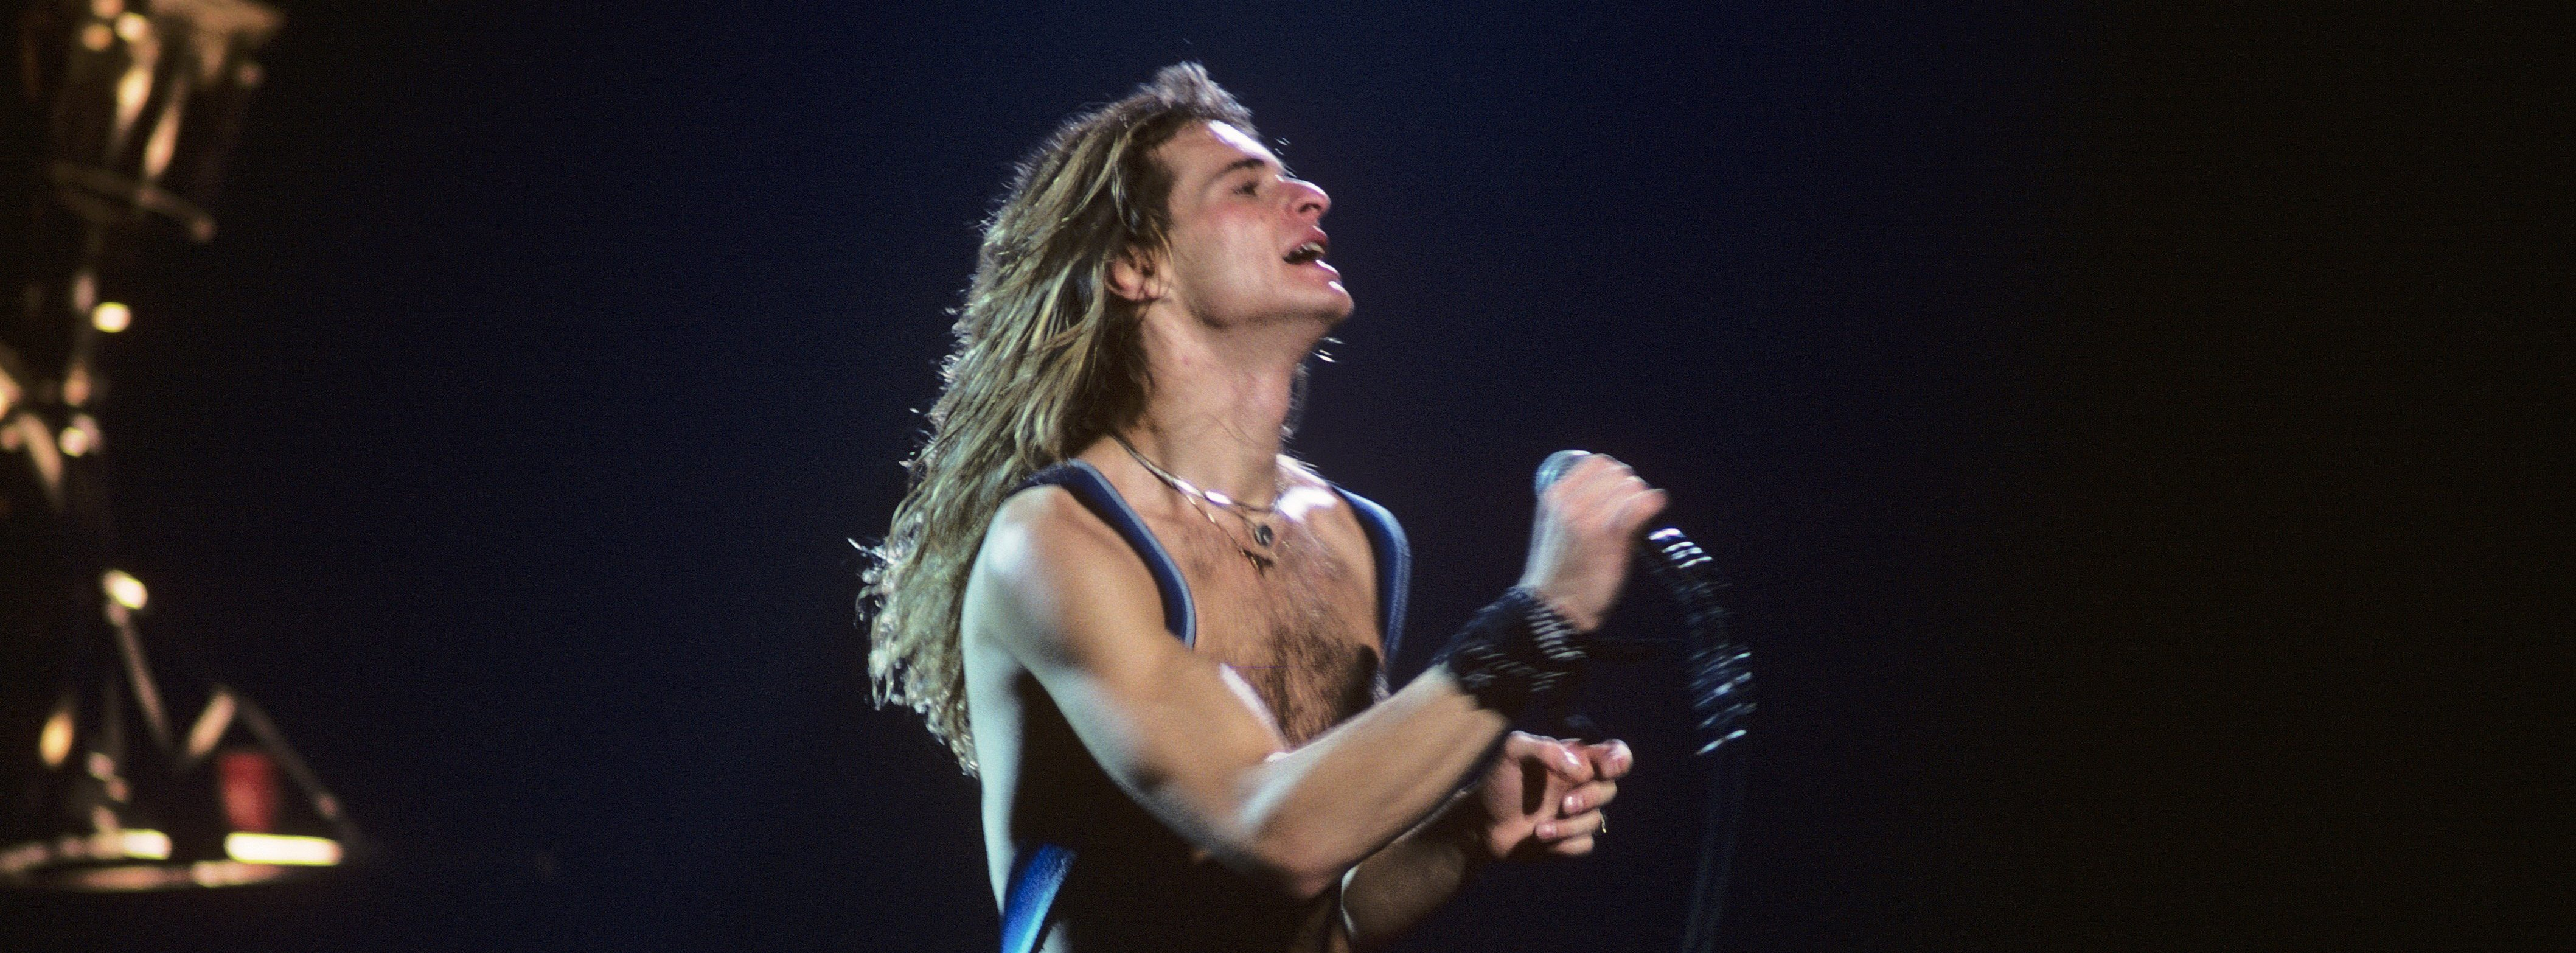 Van Halen Why The Original Line Up Must Return To Save Rock N Roll Insidehook